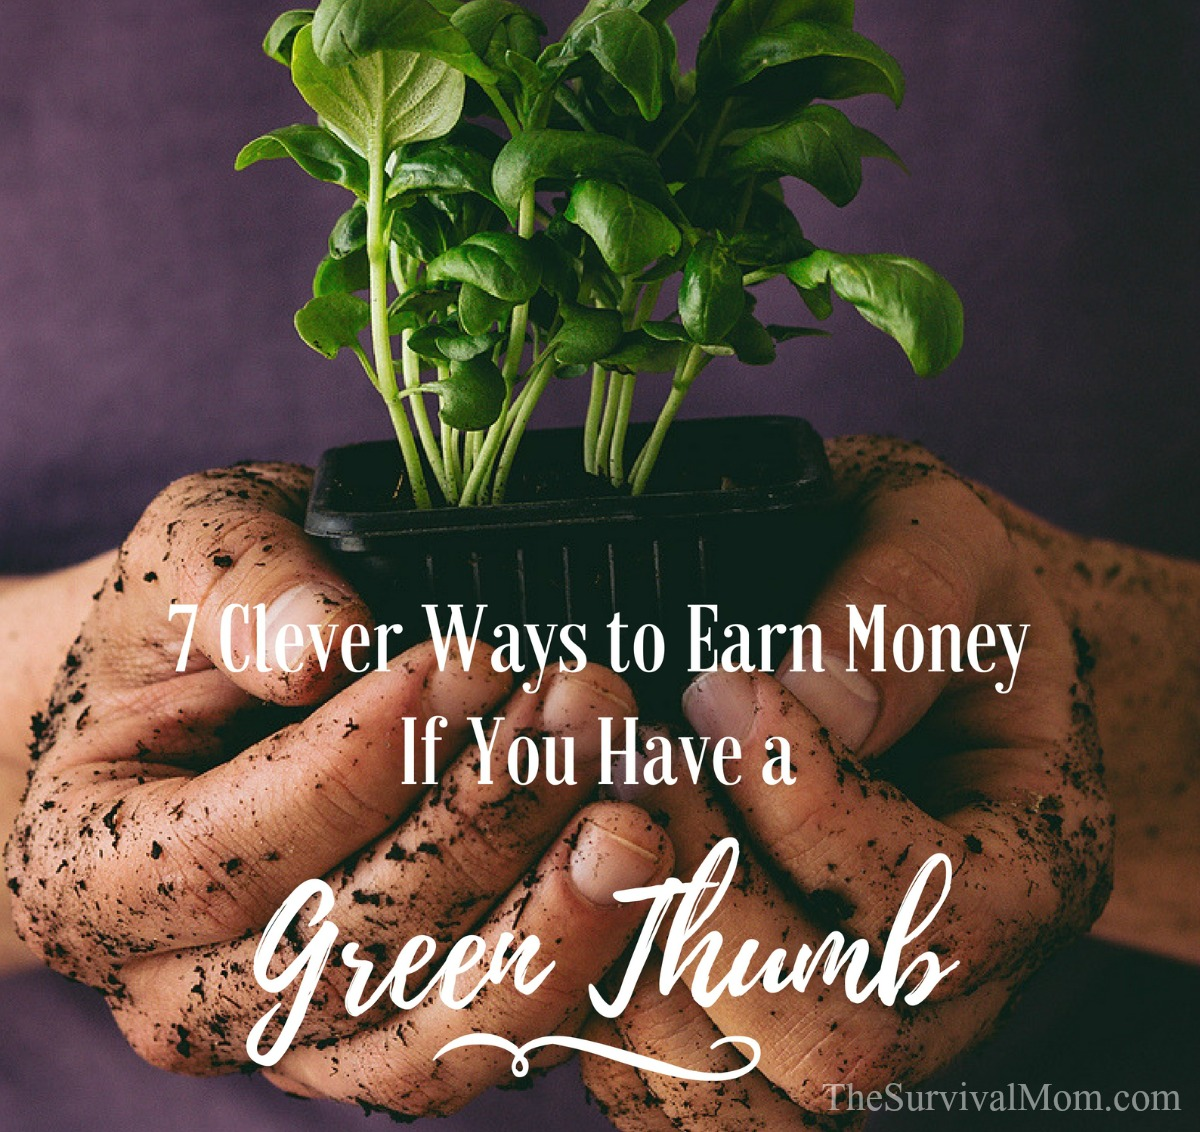 earn money with a green thumb